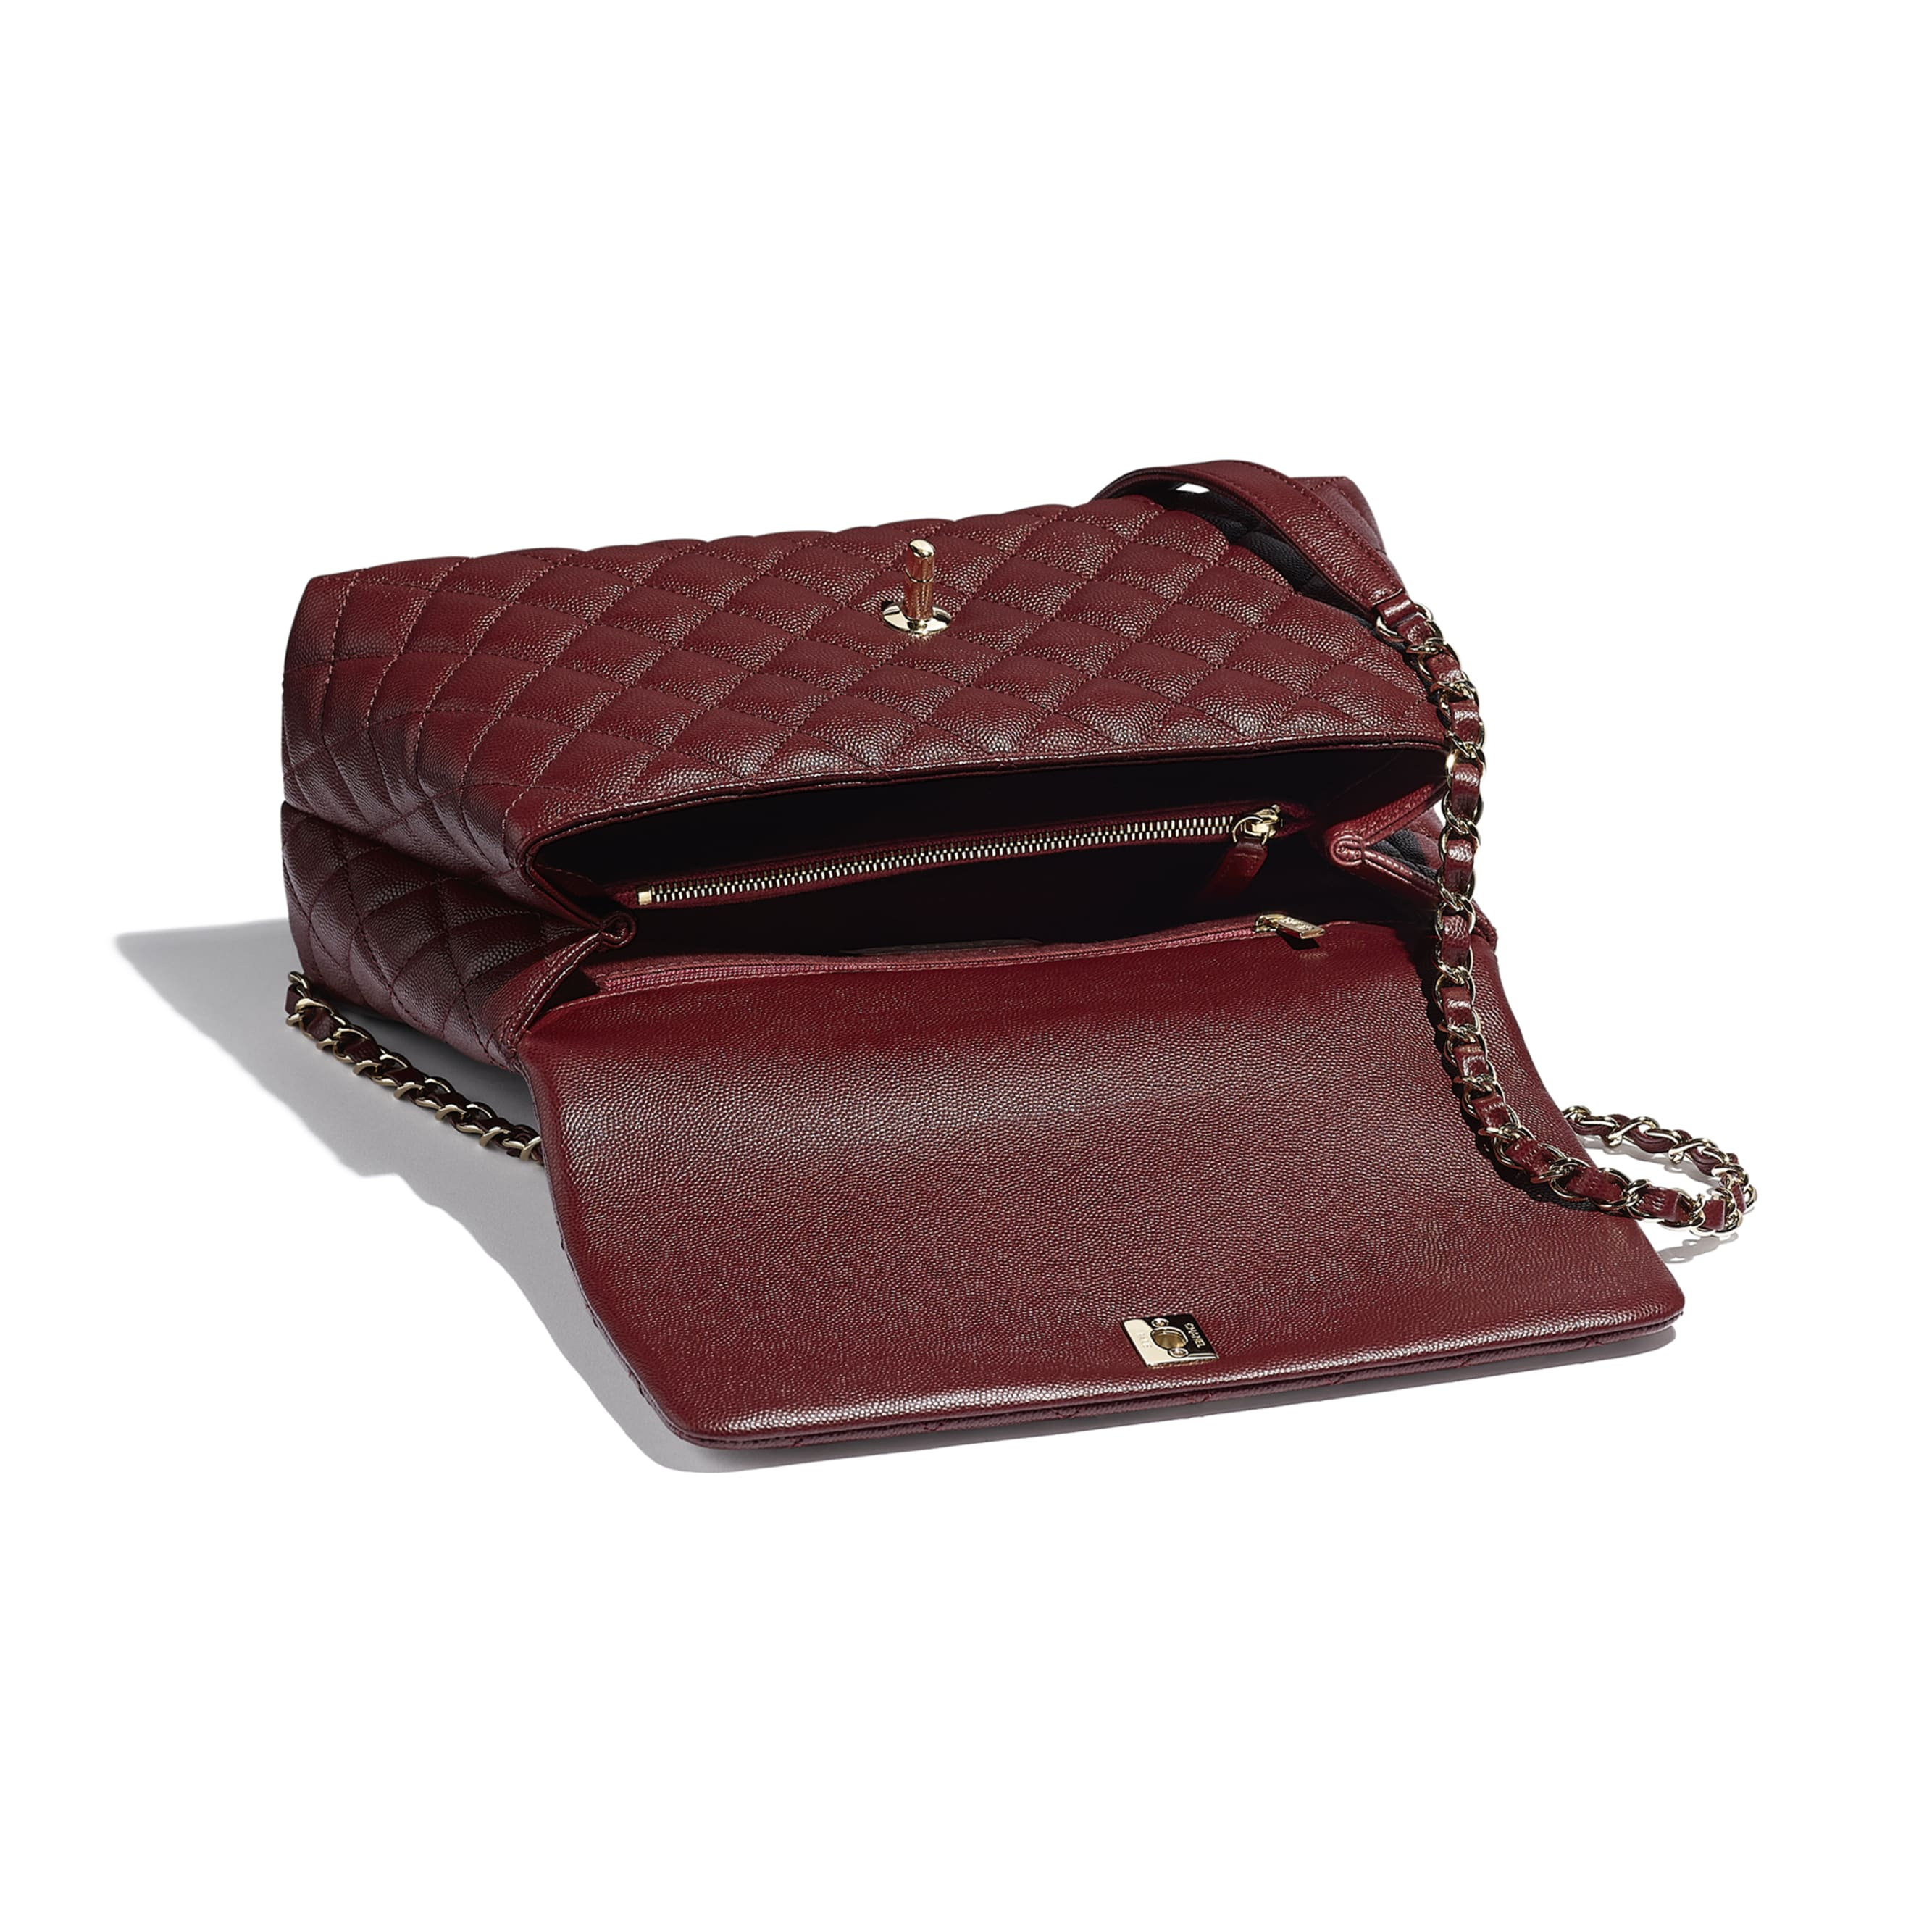 Flap Bag With Top Handle - Burgundy - Grained Calfskin & Gold-Tone Metal - CHANEL - Other view - see standard sized version